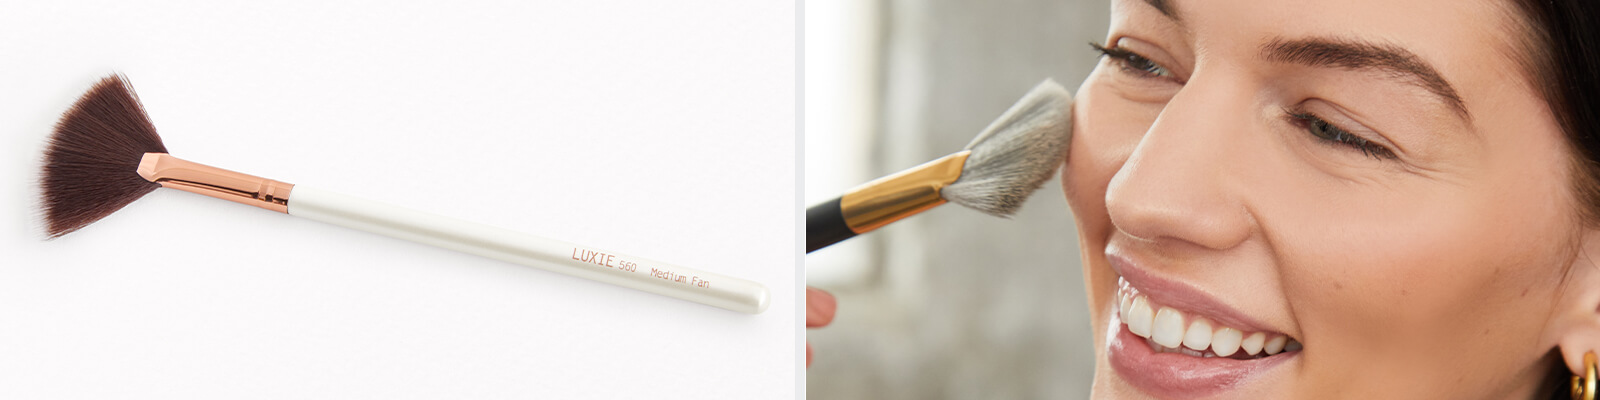 Confused By A Fan Brush? Don't Be–Here's How to Use It